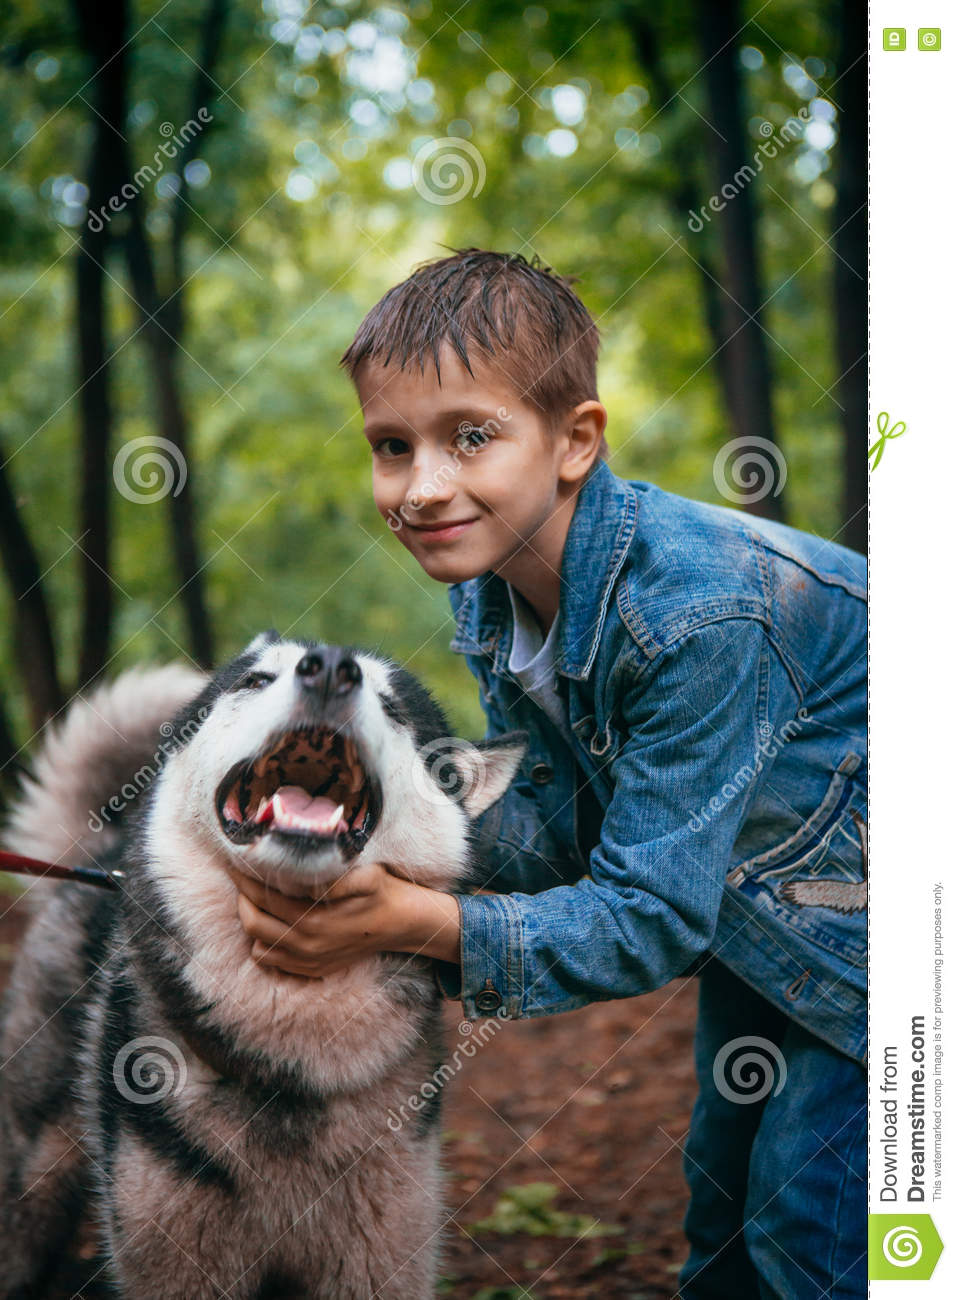 Boy and his dog husky on the background of leaves in spring